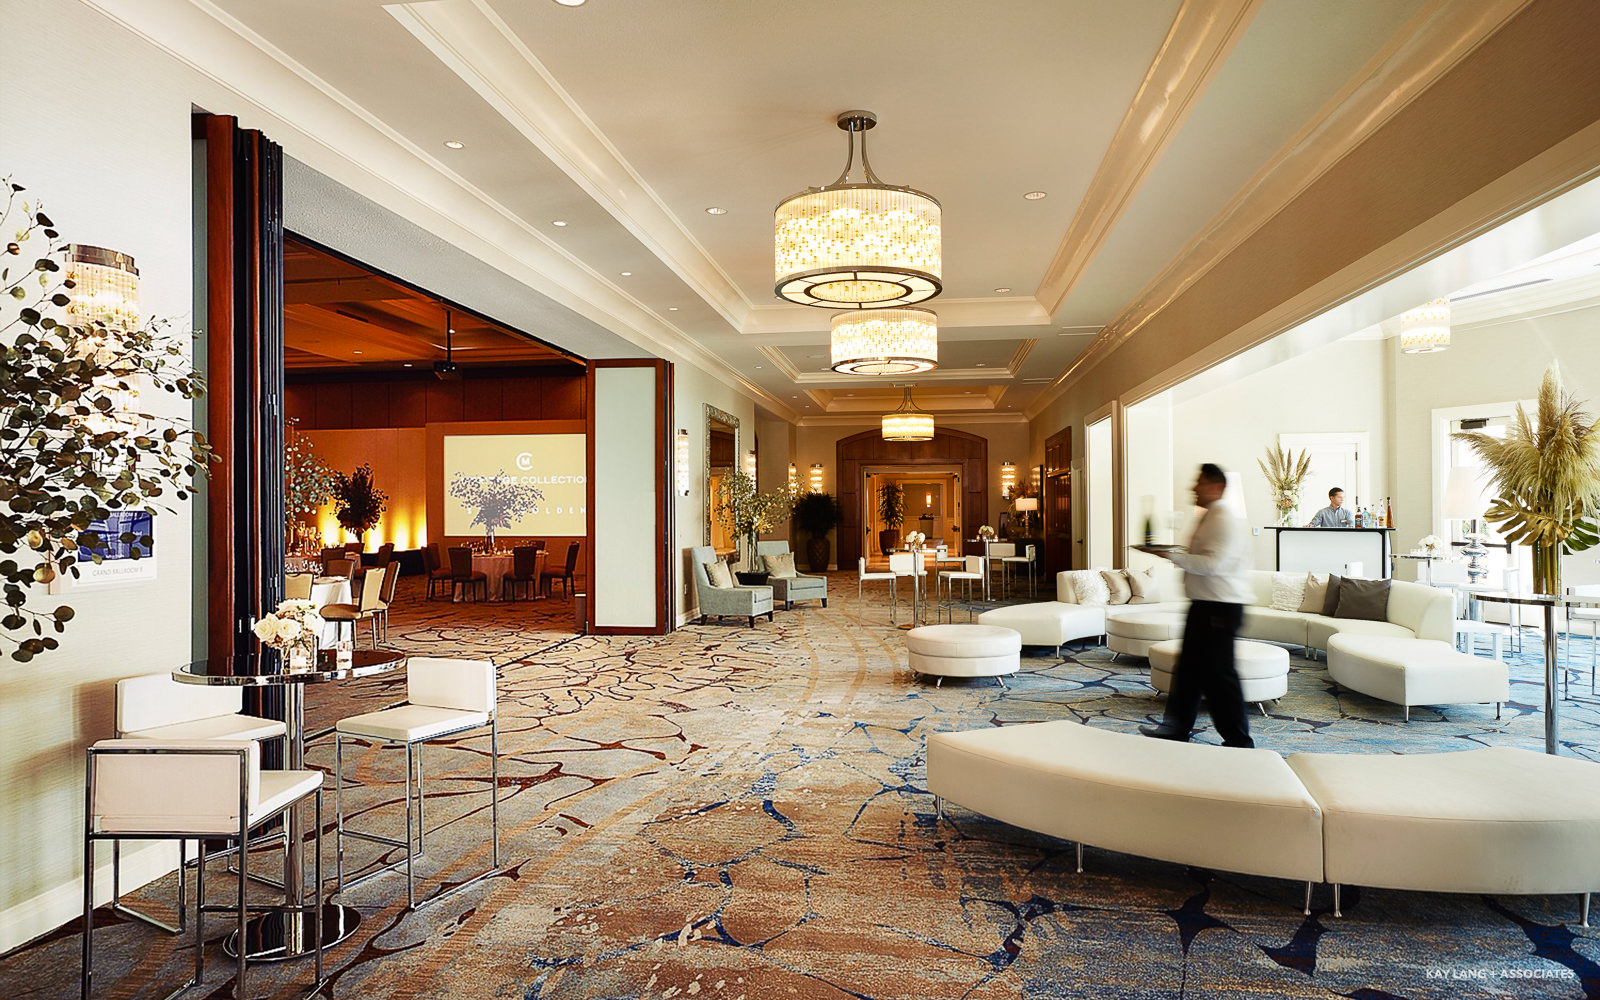 Kay Lang Associates Interior Design Firm Los Angeles California With Hospitality Firms Nyc